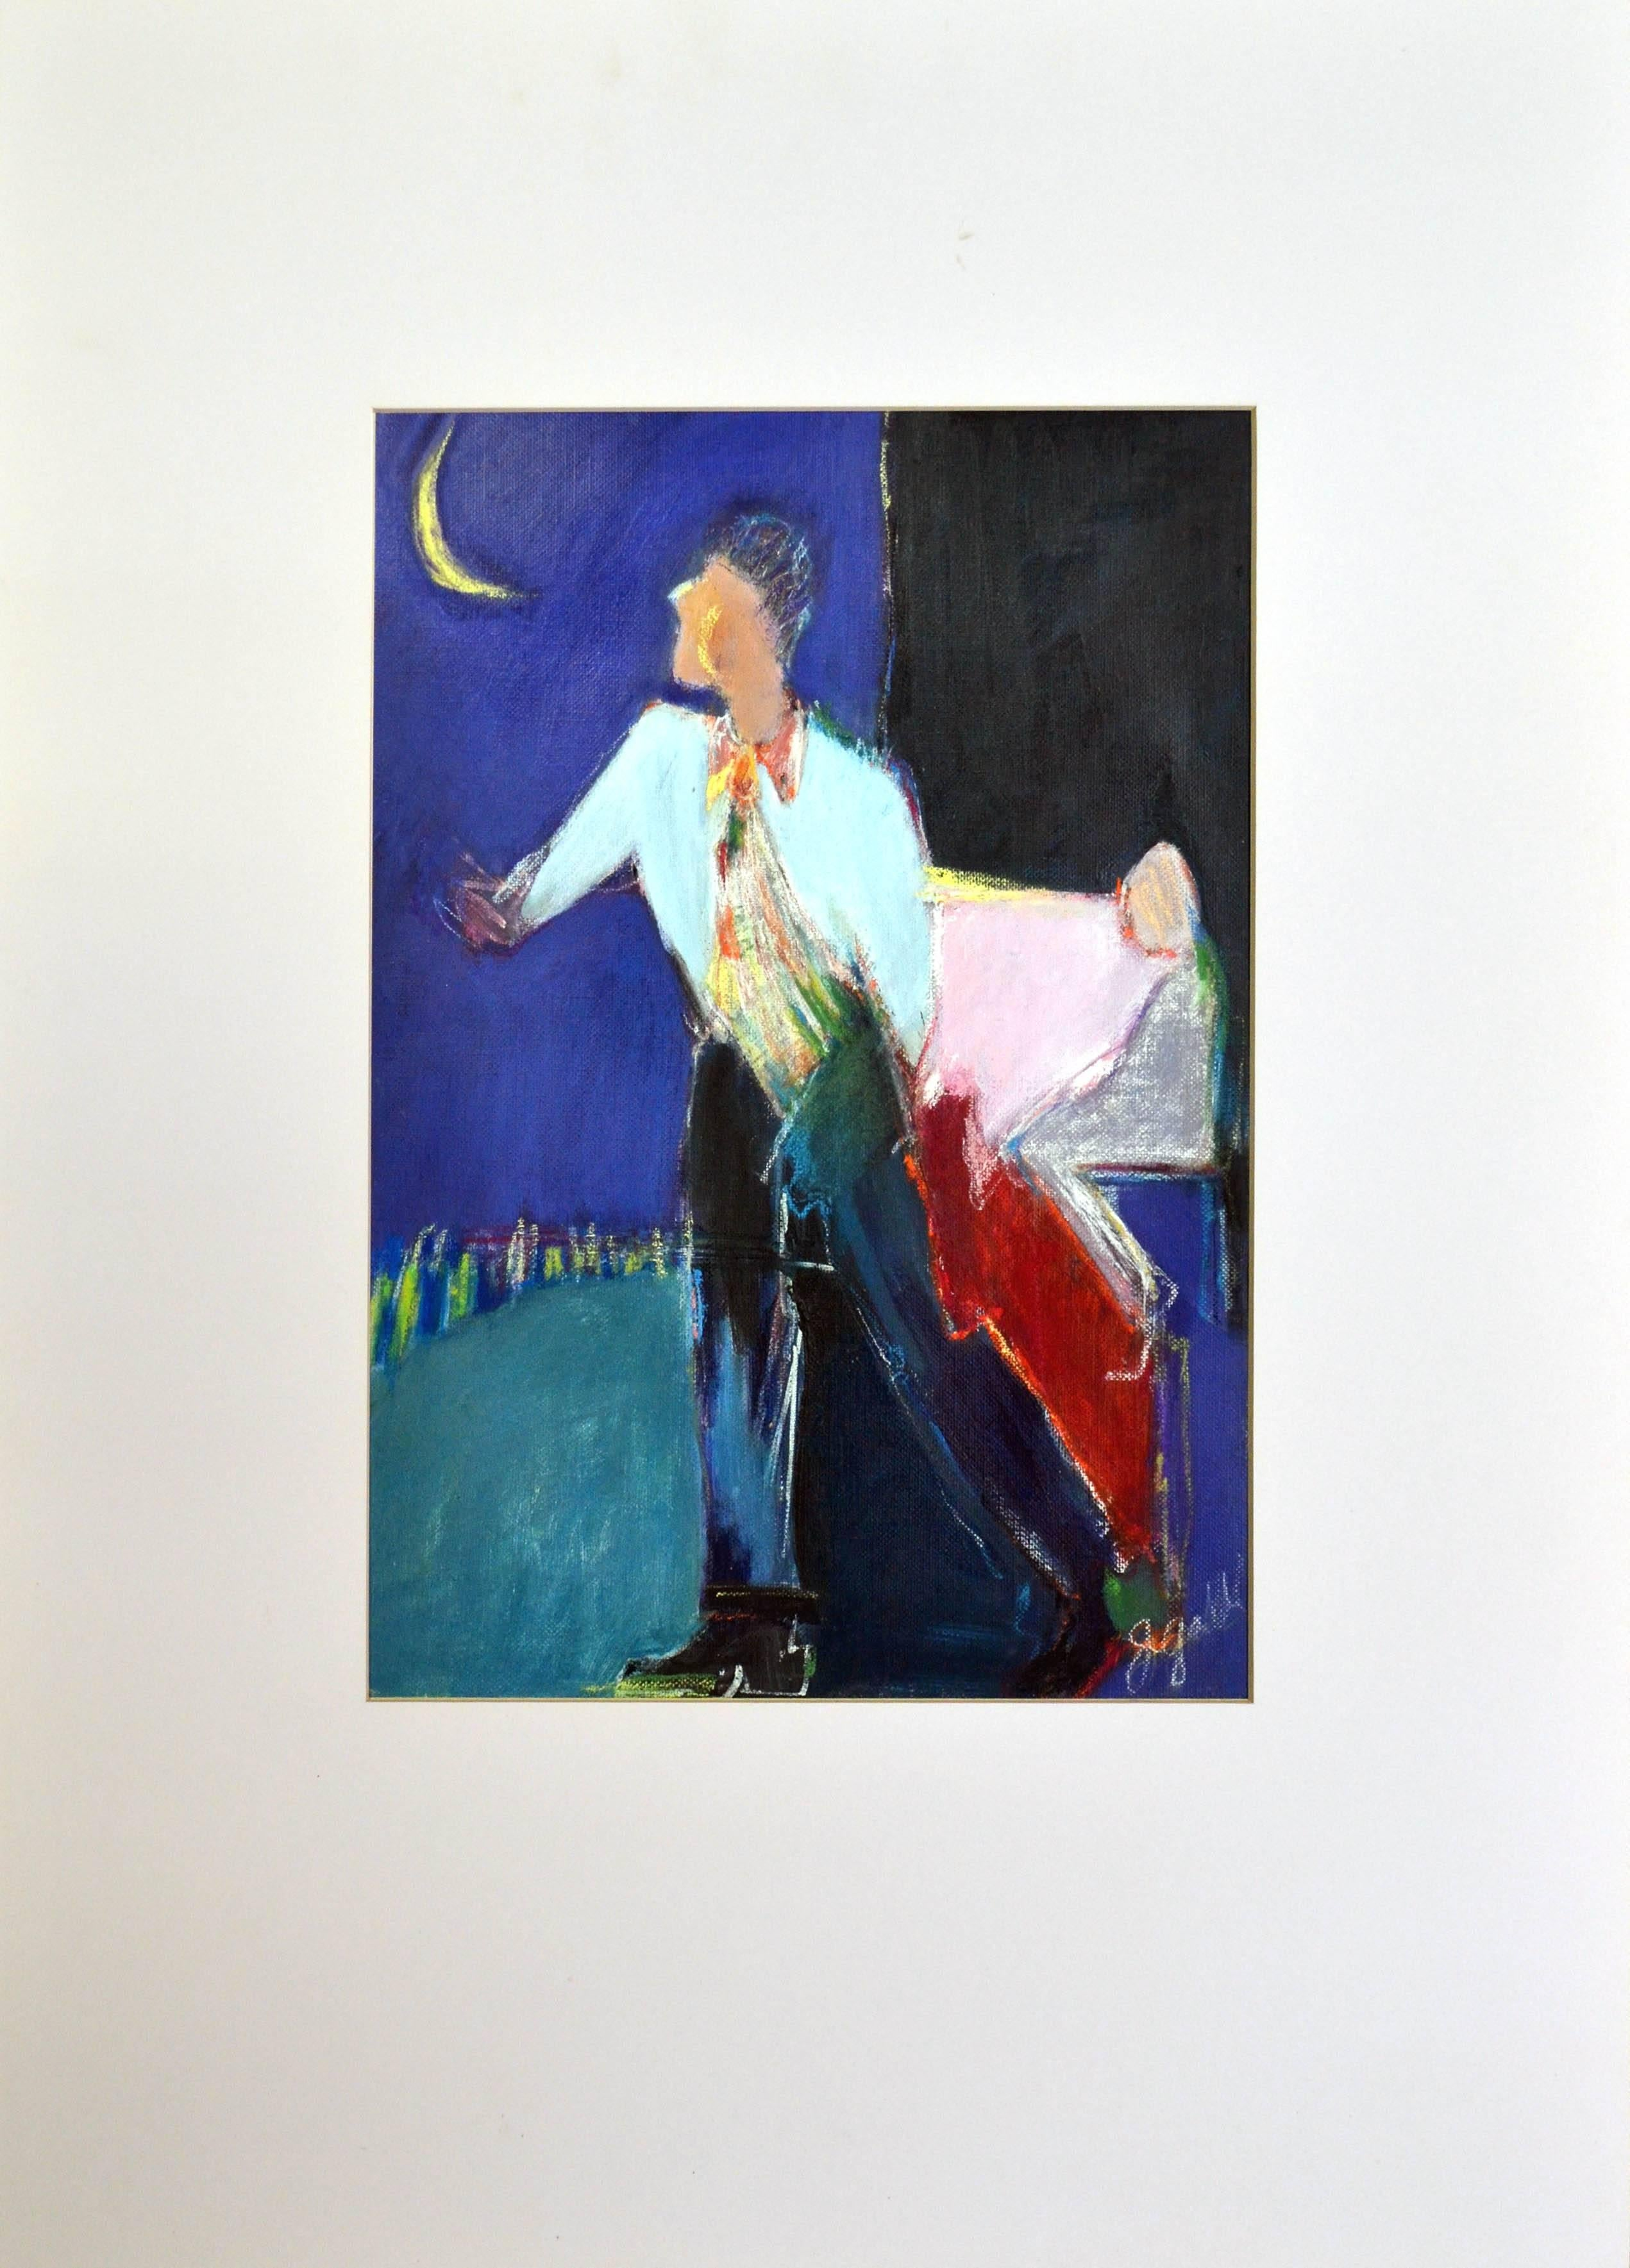 Man With Moon - Figurative Abstract